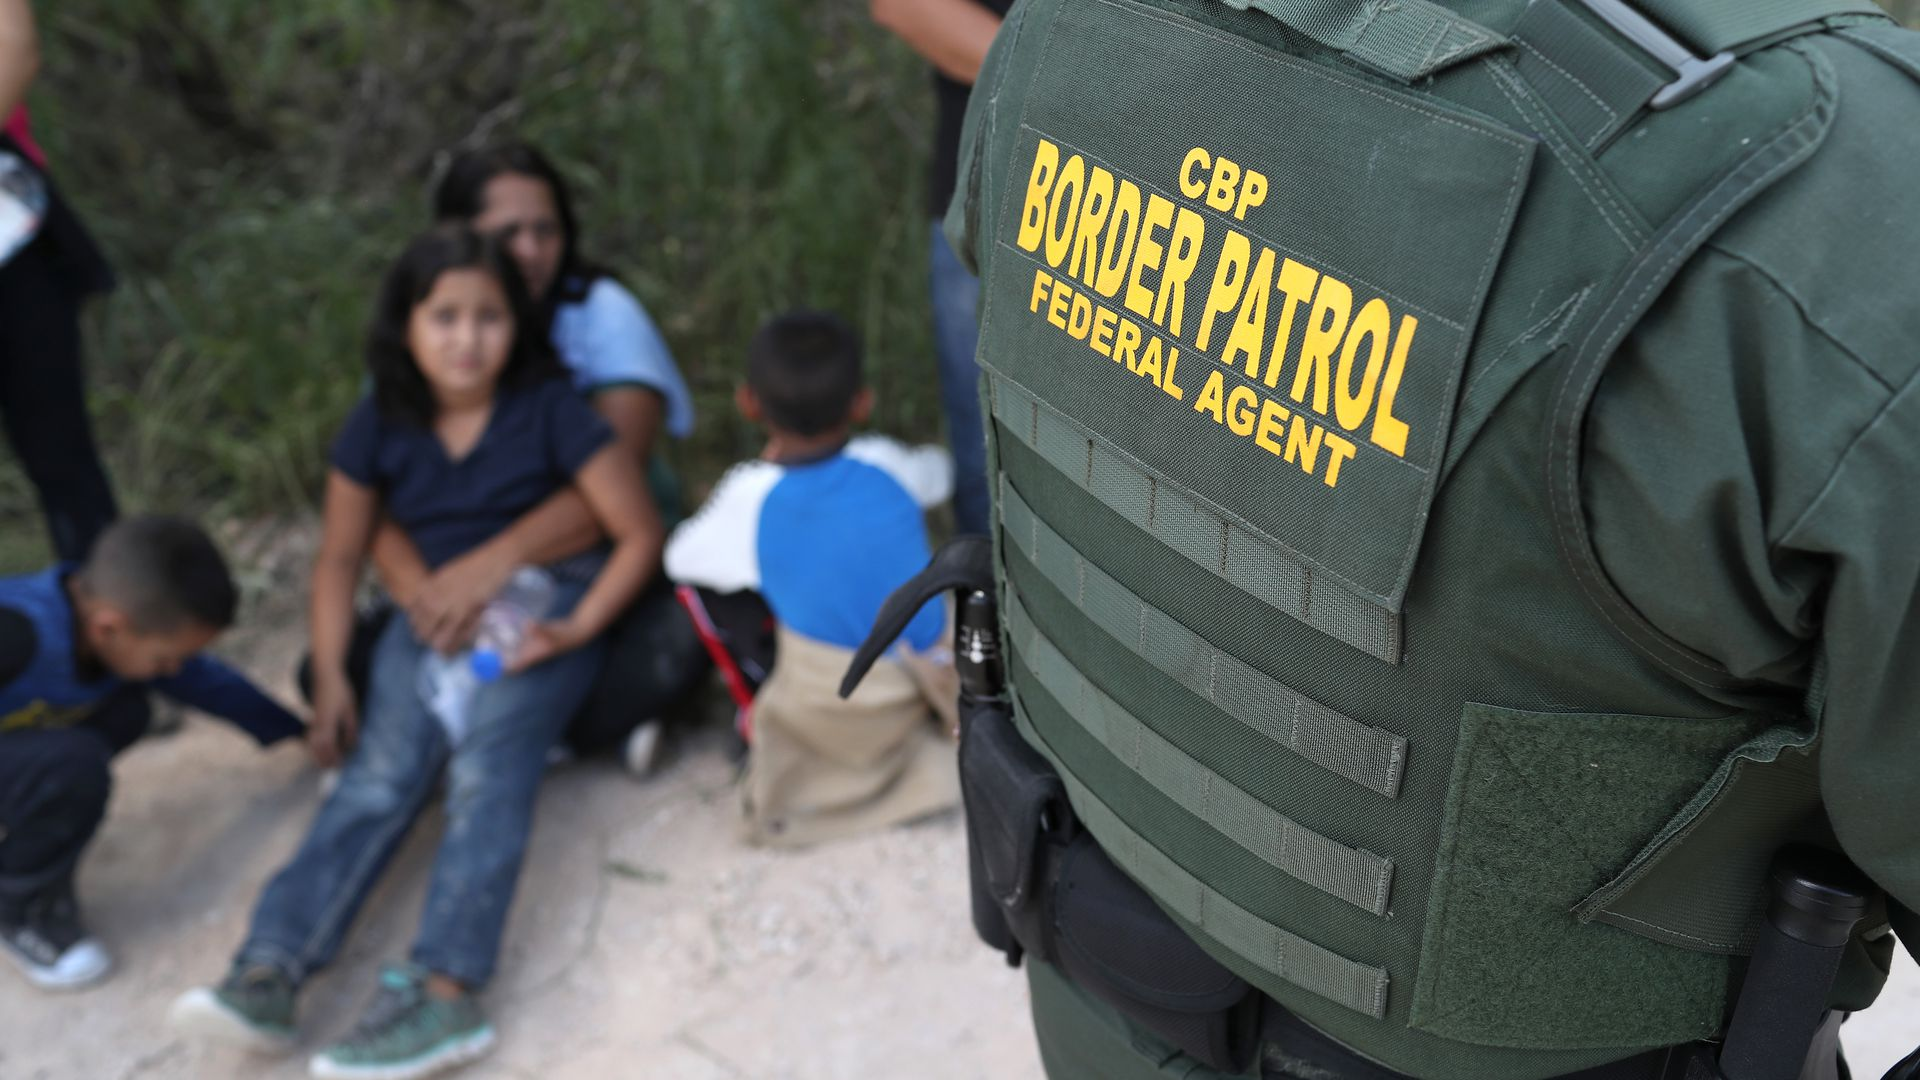 Border Patrol agent jacket with arrested immigrants sitting in the sand in the background